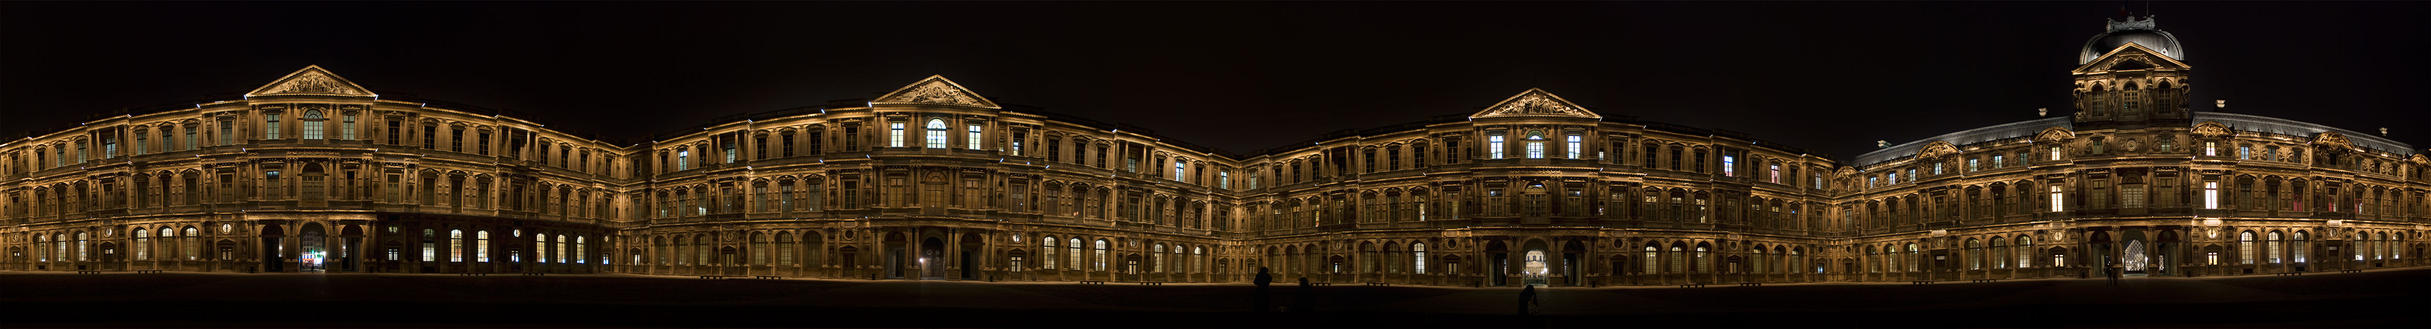 Place Carree Pano by manzin